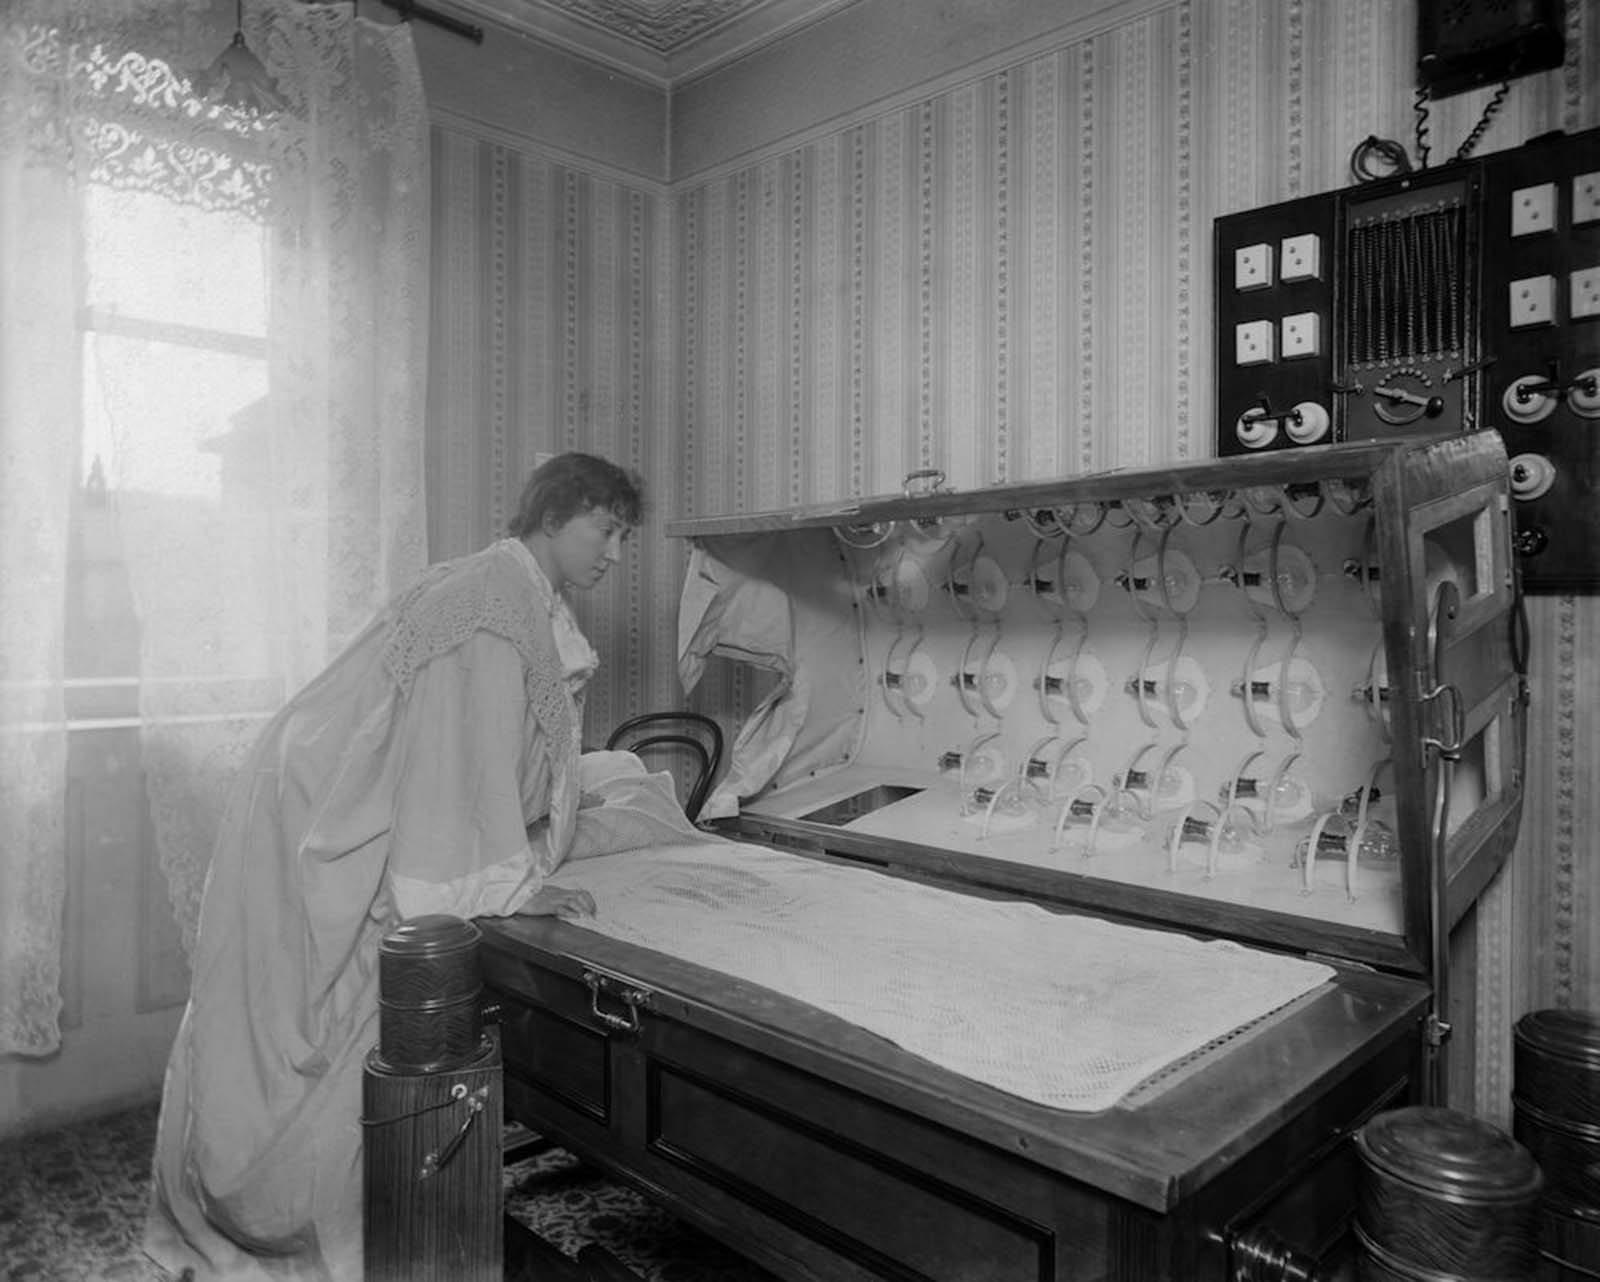 A woman inspects an Electric Bath at the Light Care Institute. The Electric Bath is probably a forerunner of the modern sunbed, although it was more likely used for medicinal reasons. Circa 1900.